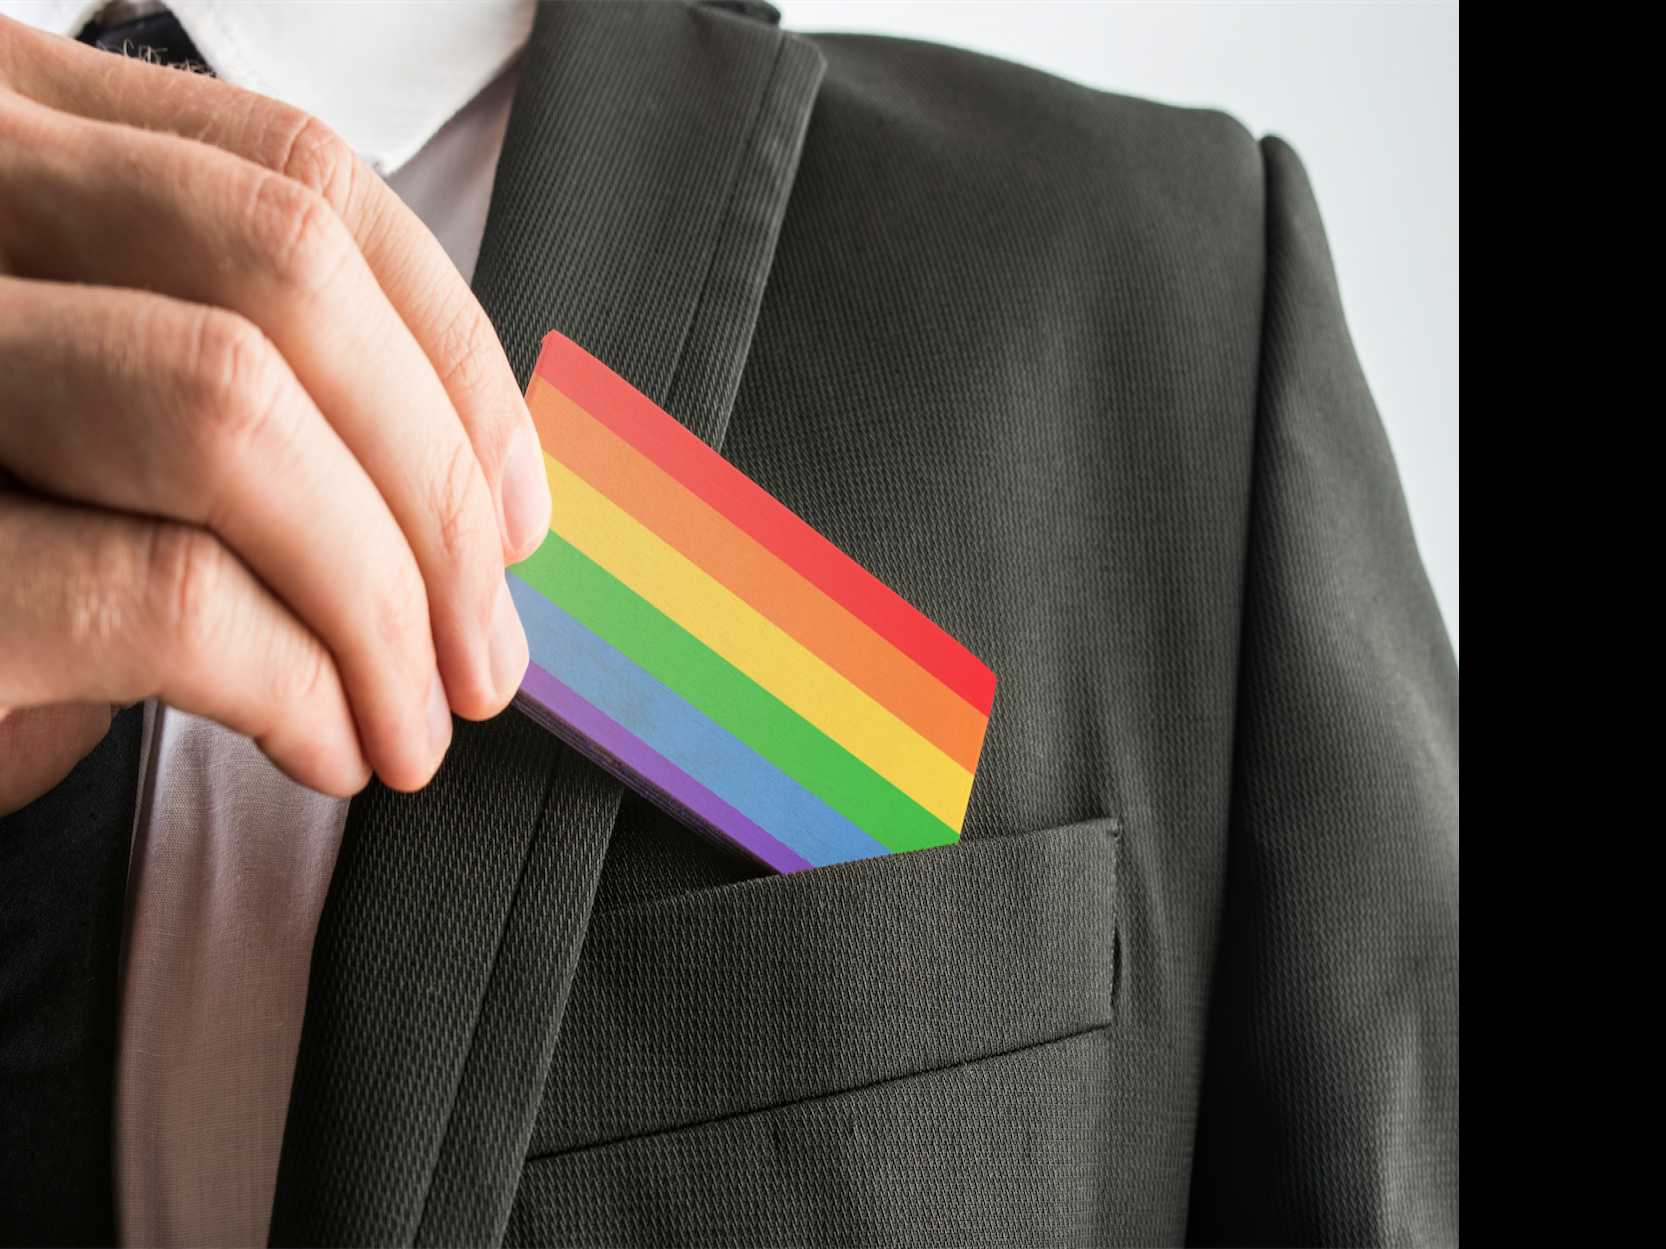 Corporate LGBT Advocacy Set to Advance Despite Potential Headwinds, New EIU Study Finds